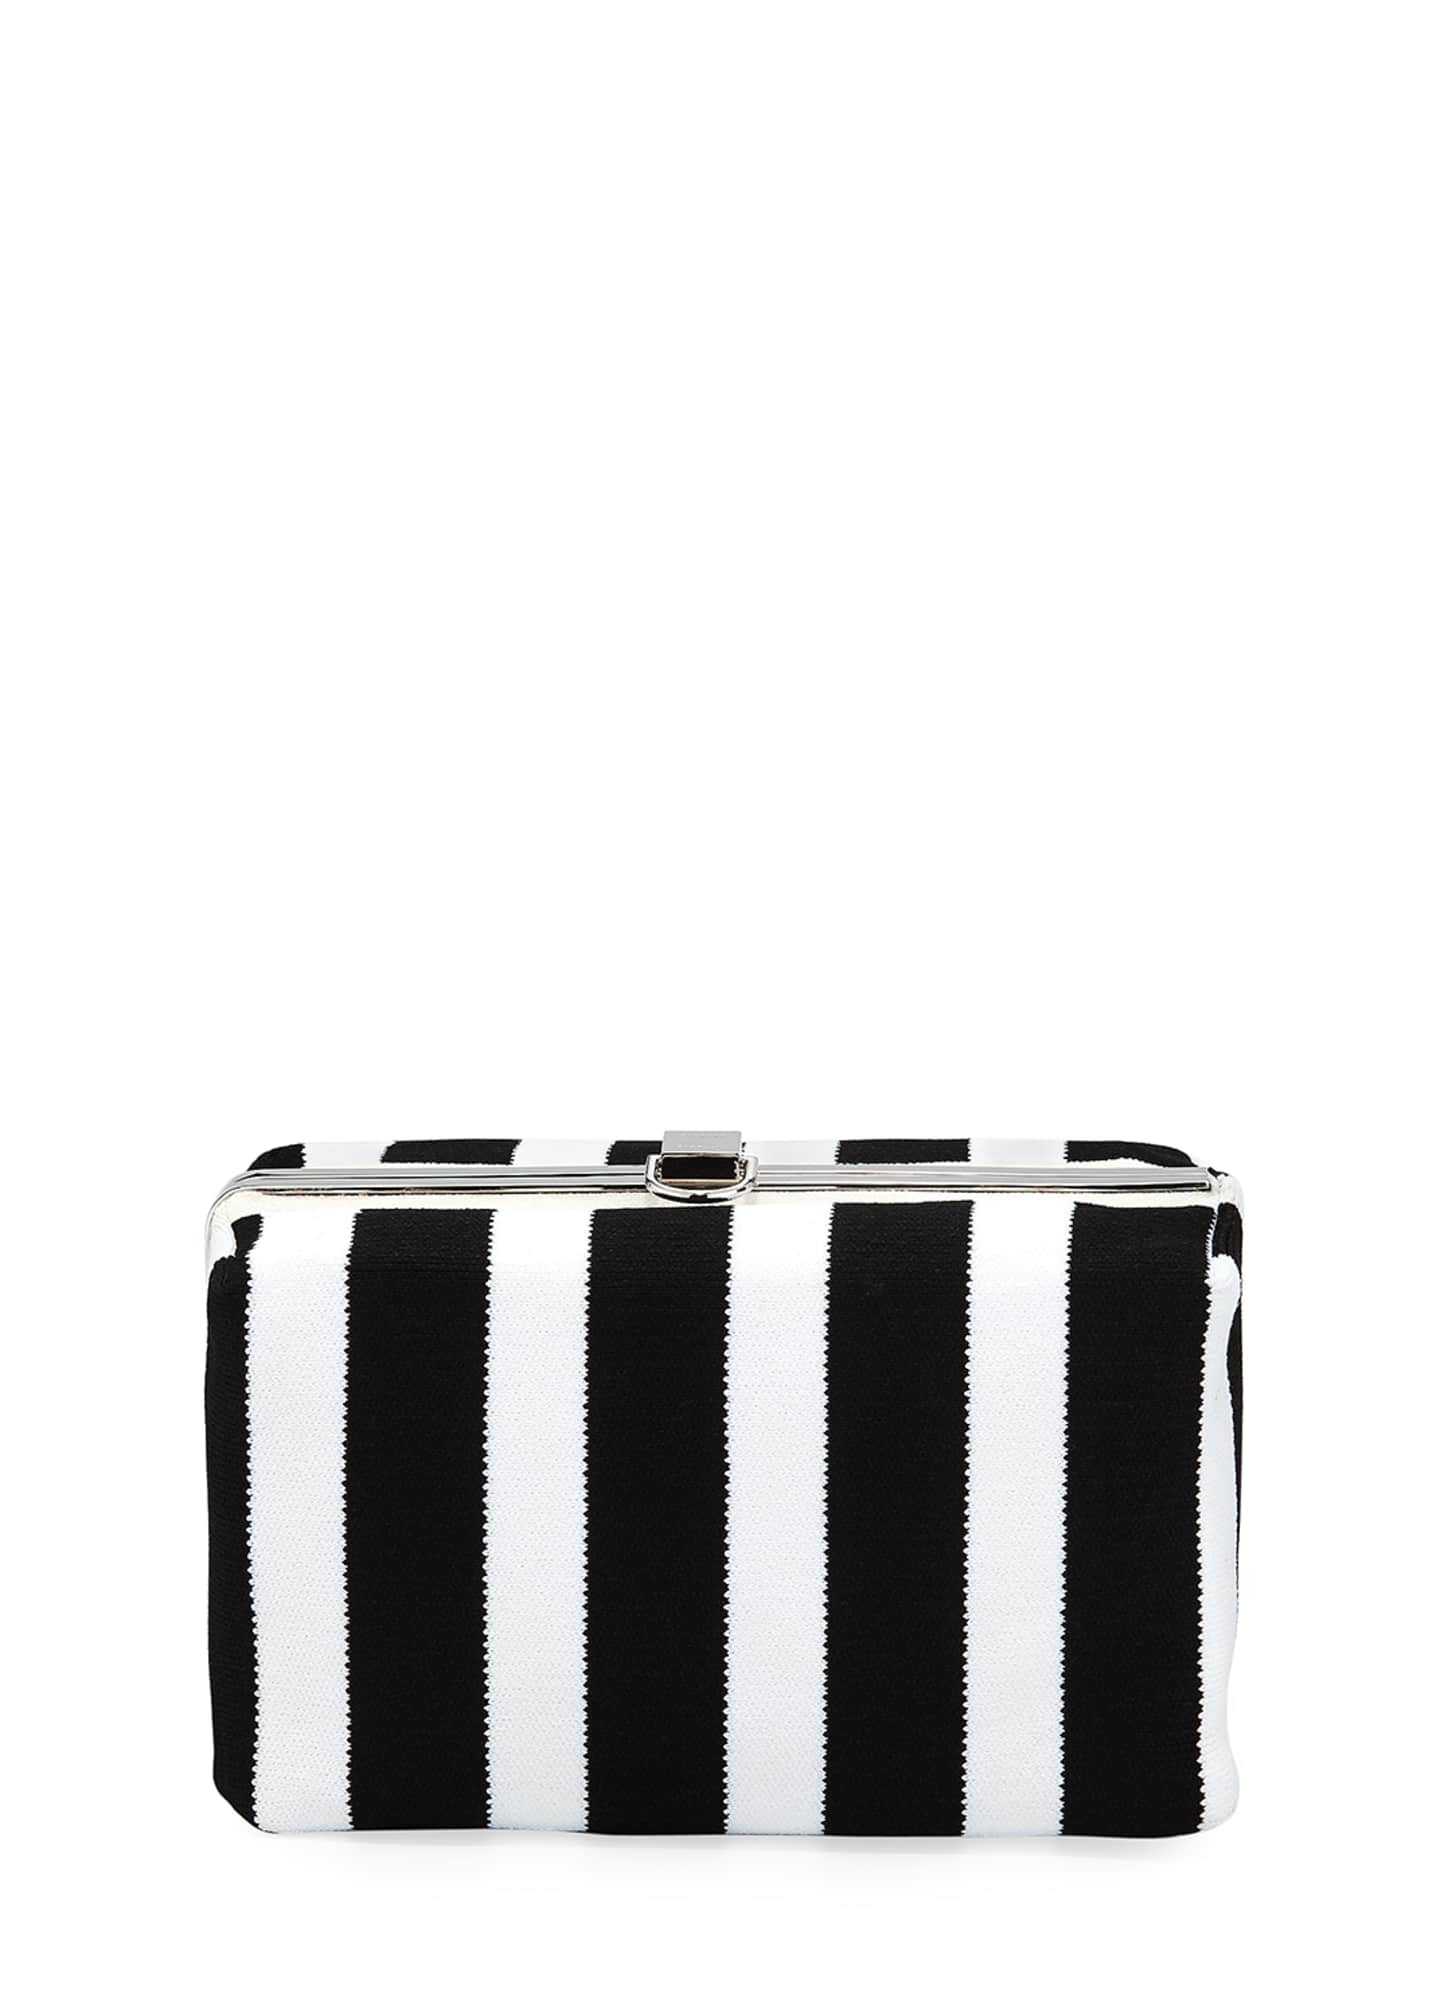 Image 1 of 3: Asymmetric Frame Clutch Bag